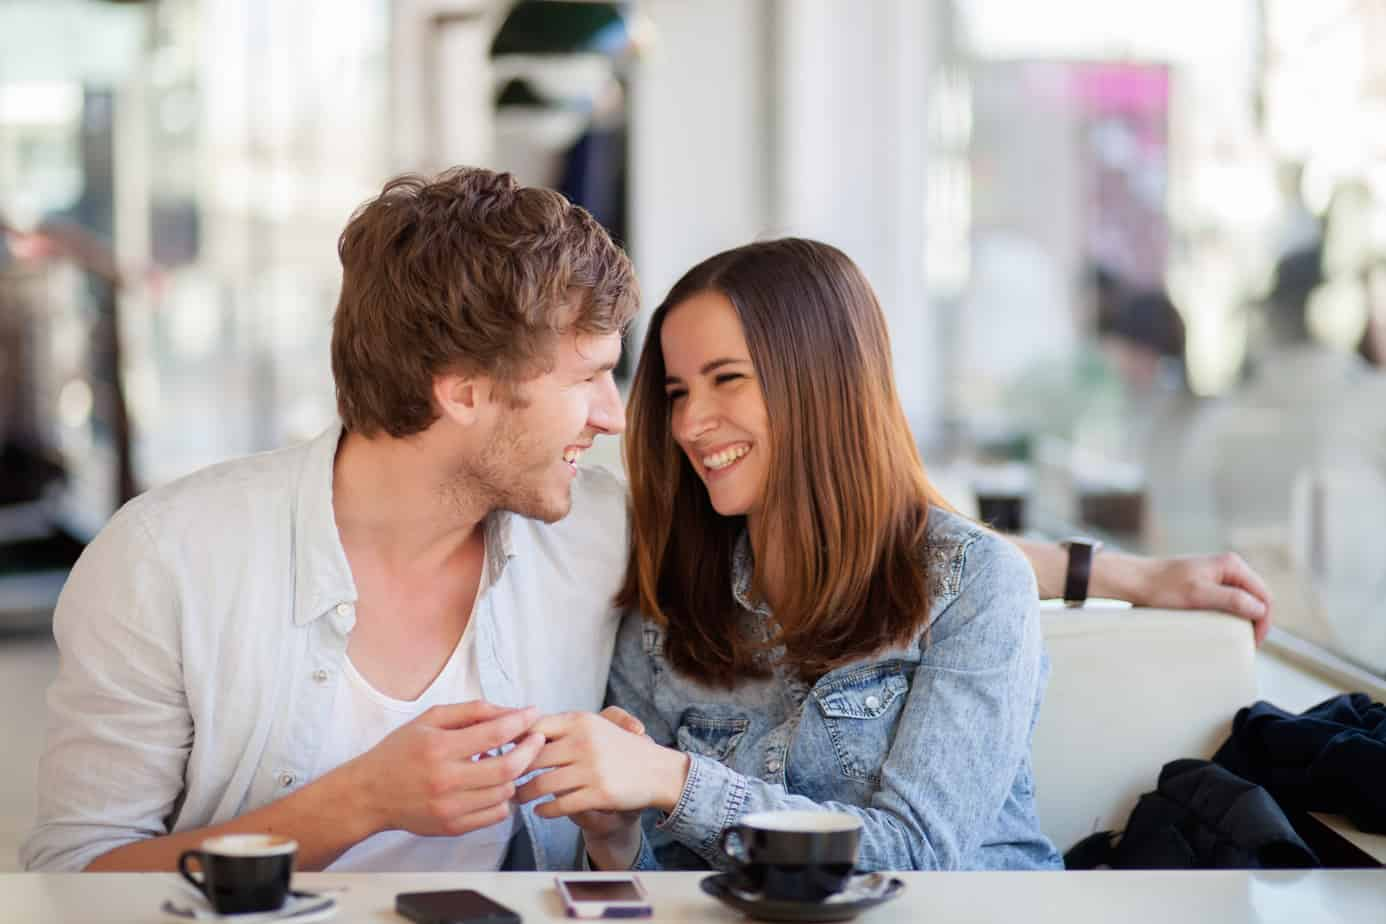 8 Real Relationship Goals Worth Striving For